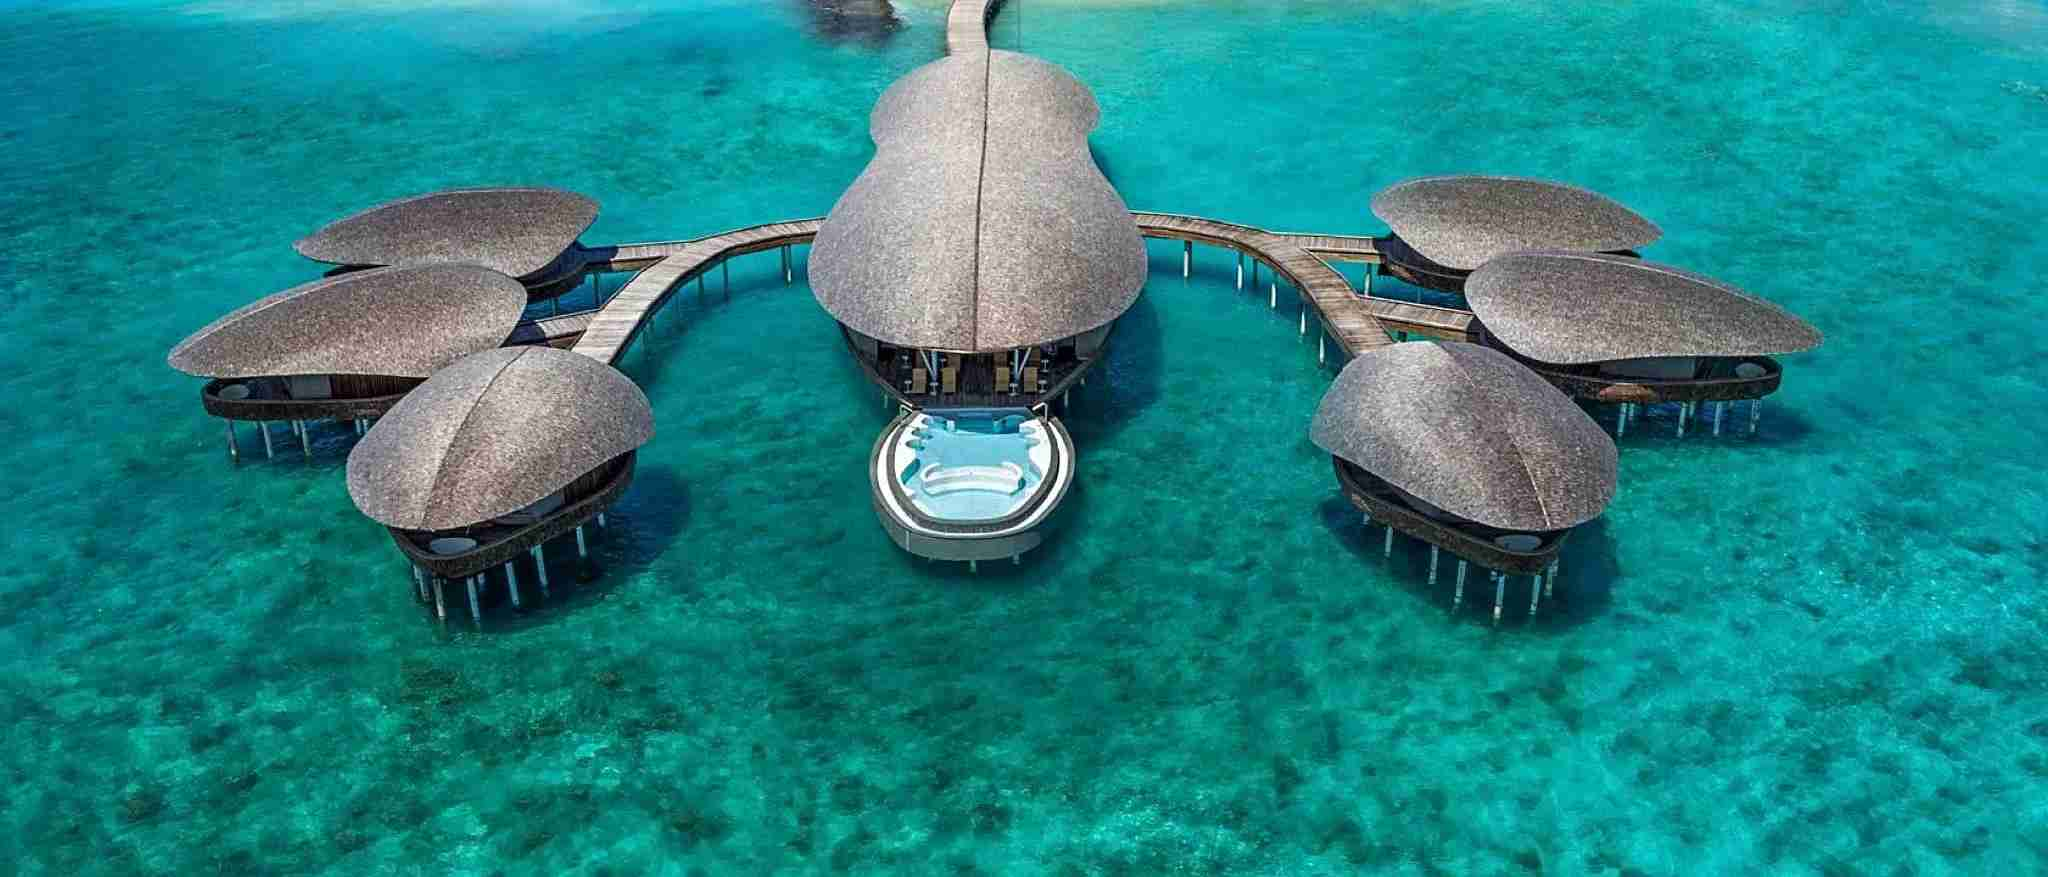 The overwater spa at the St. Regis Maldives. Image courtesy of St. Regis Maldives.